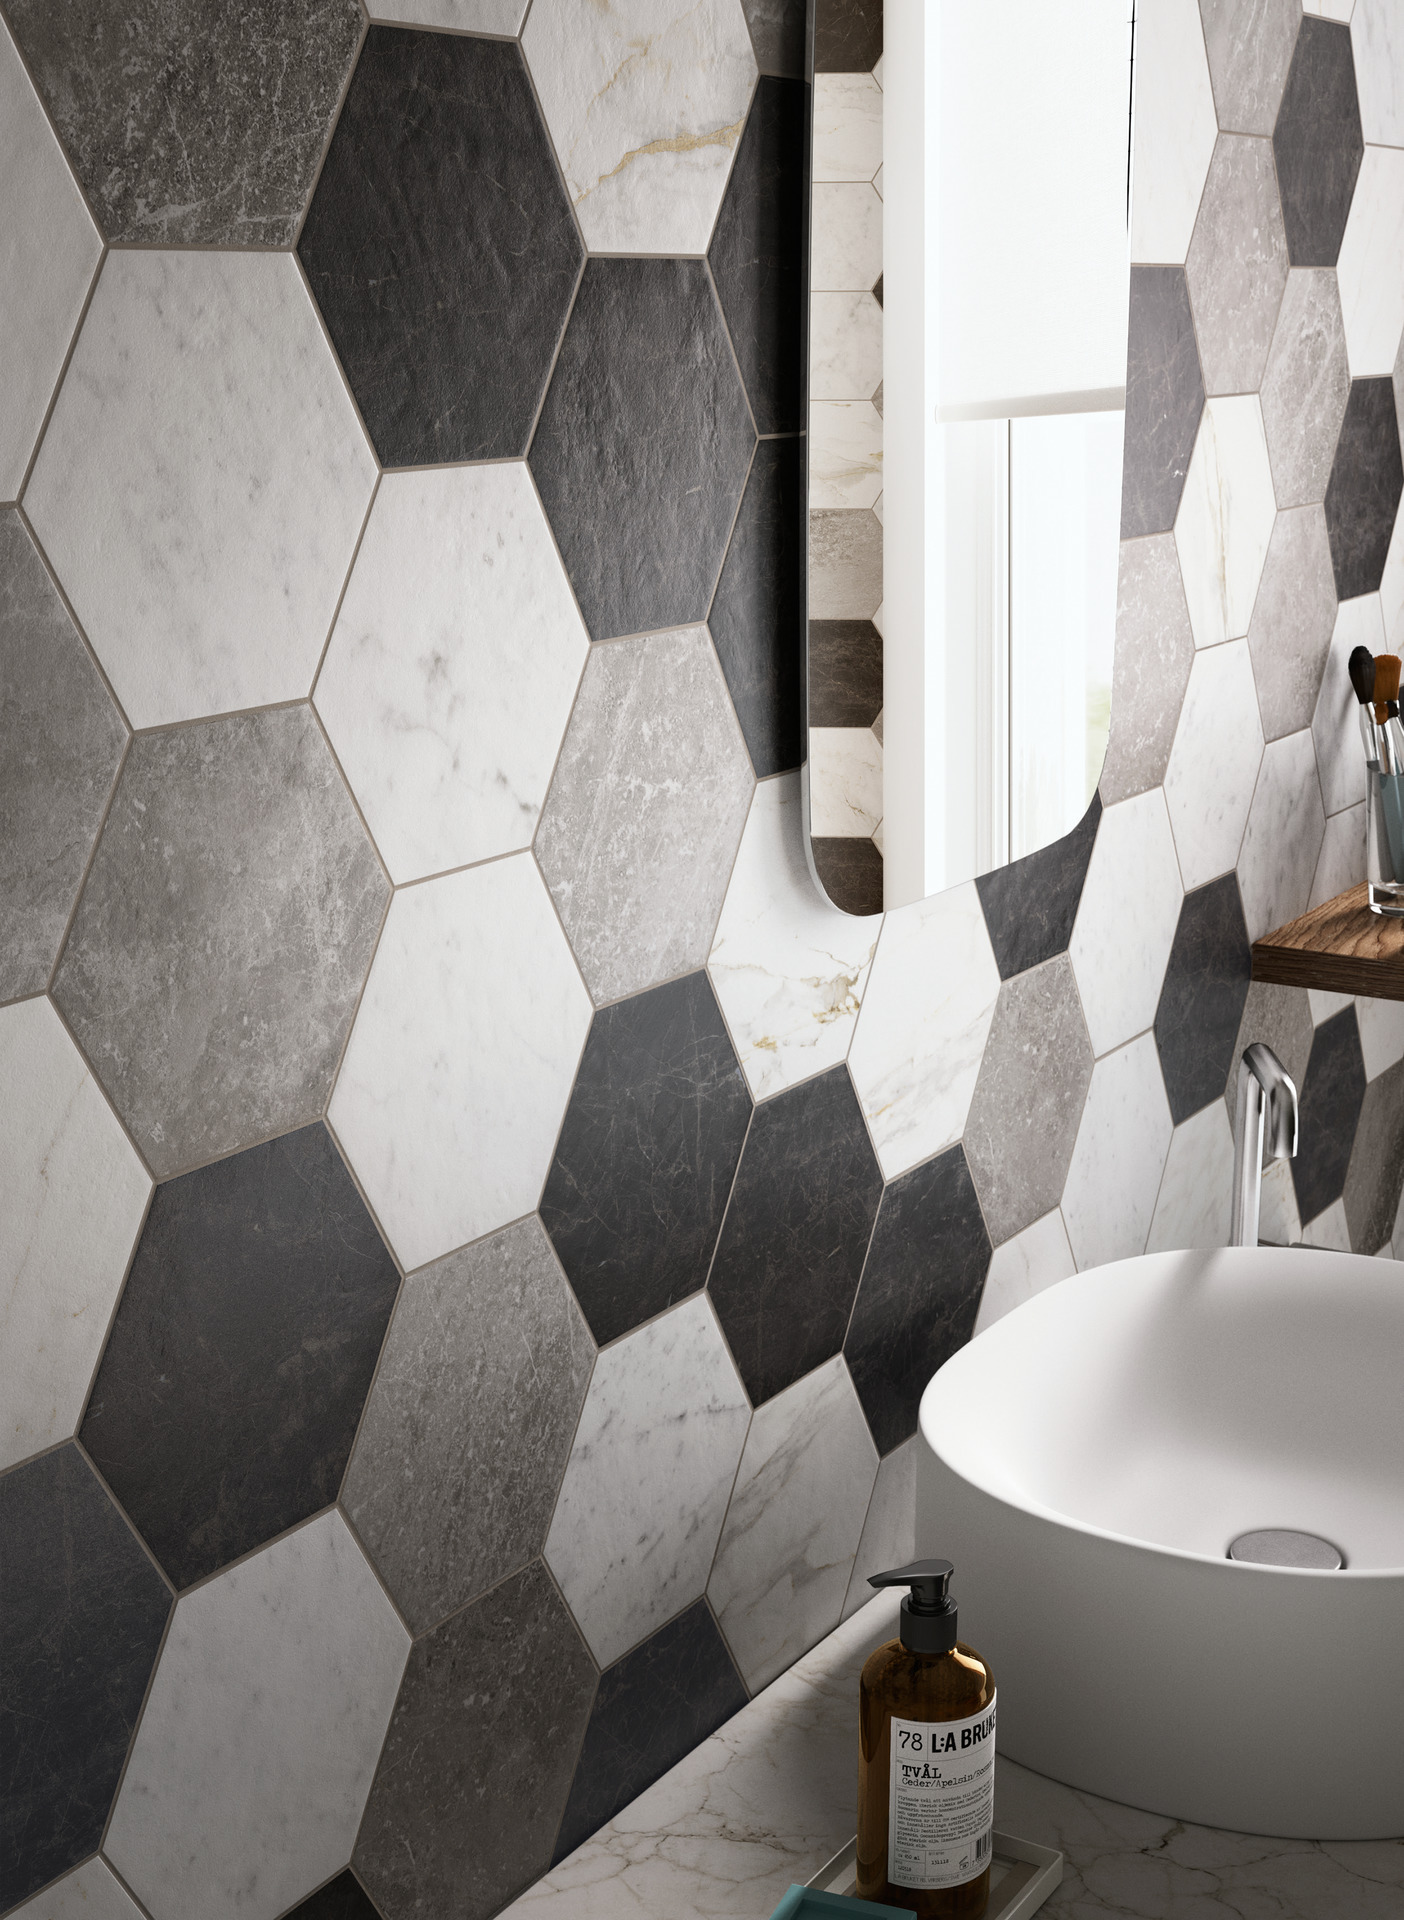 Bathroom flooring in porcelain stoneware ragno